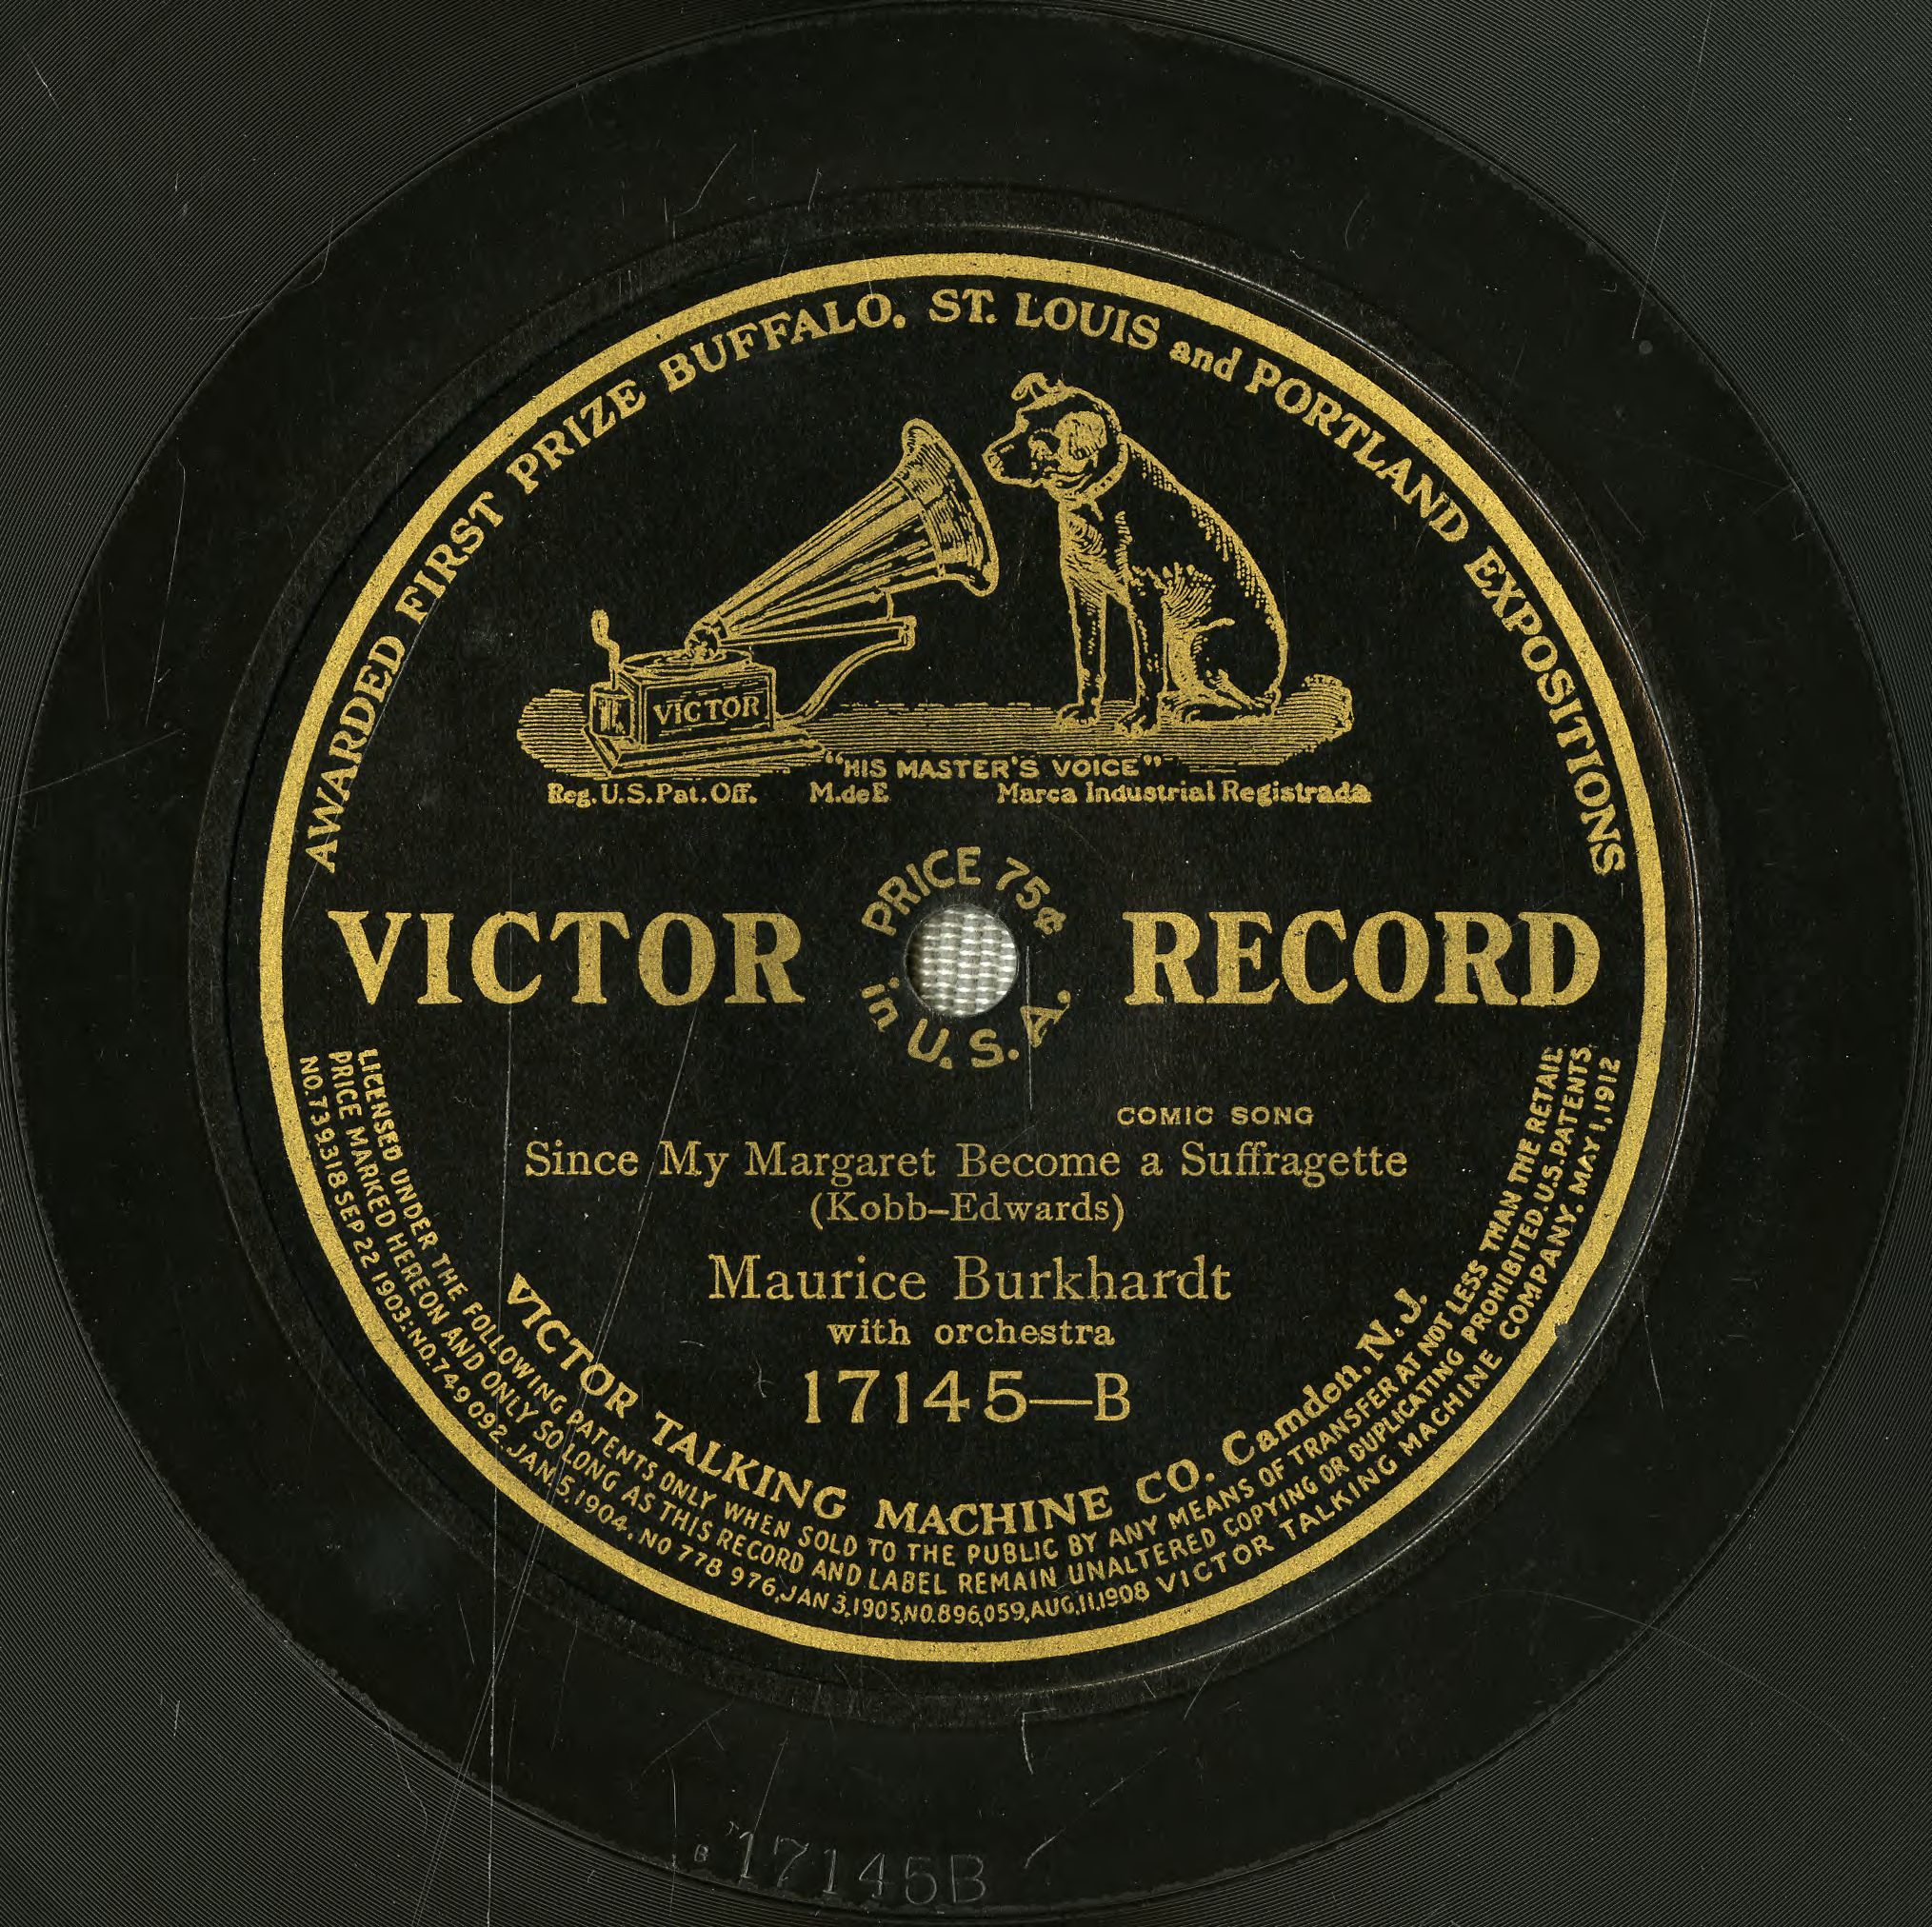 78 Victor Record of Since my Margaret become a suffragette